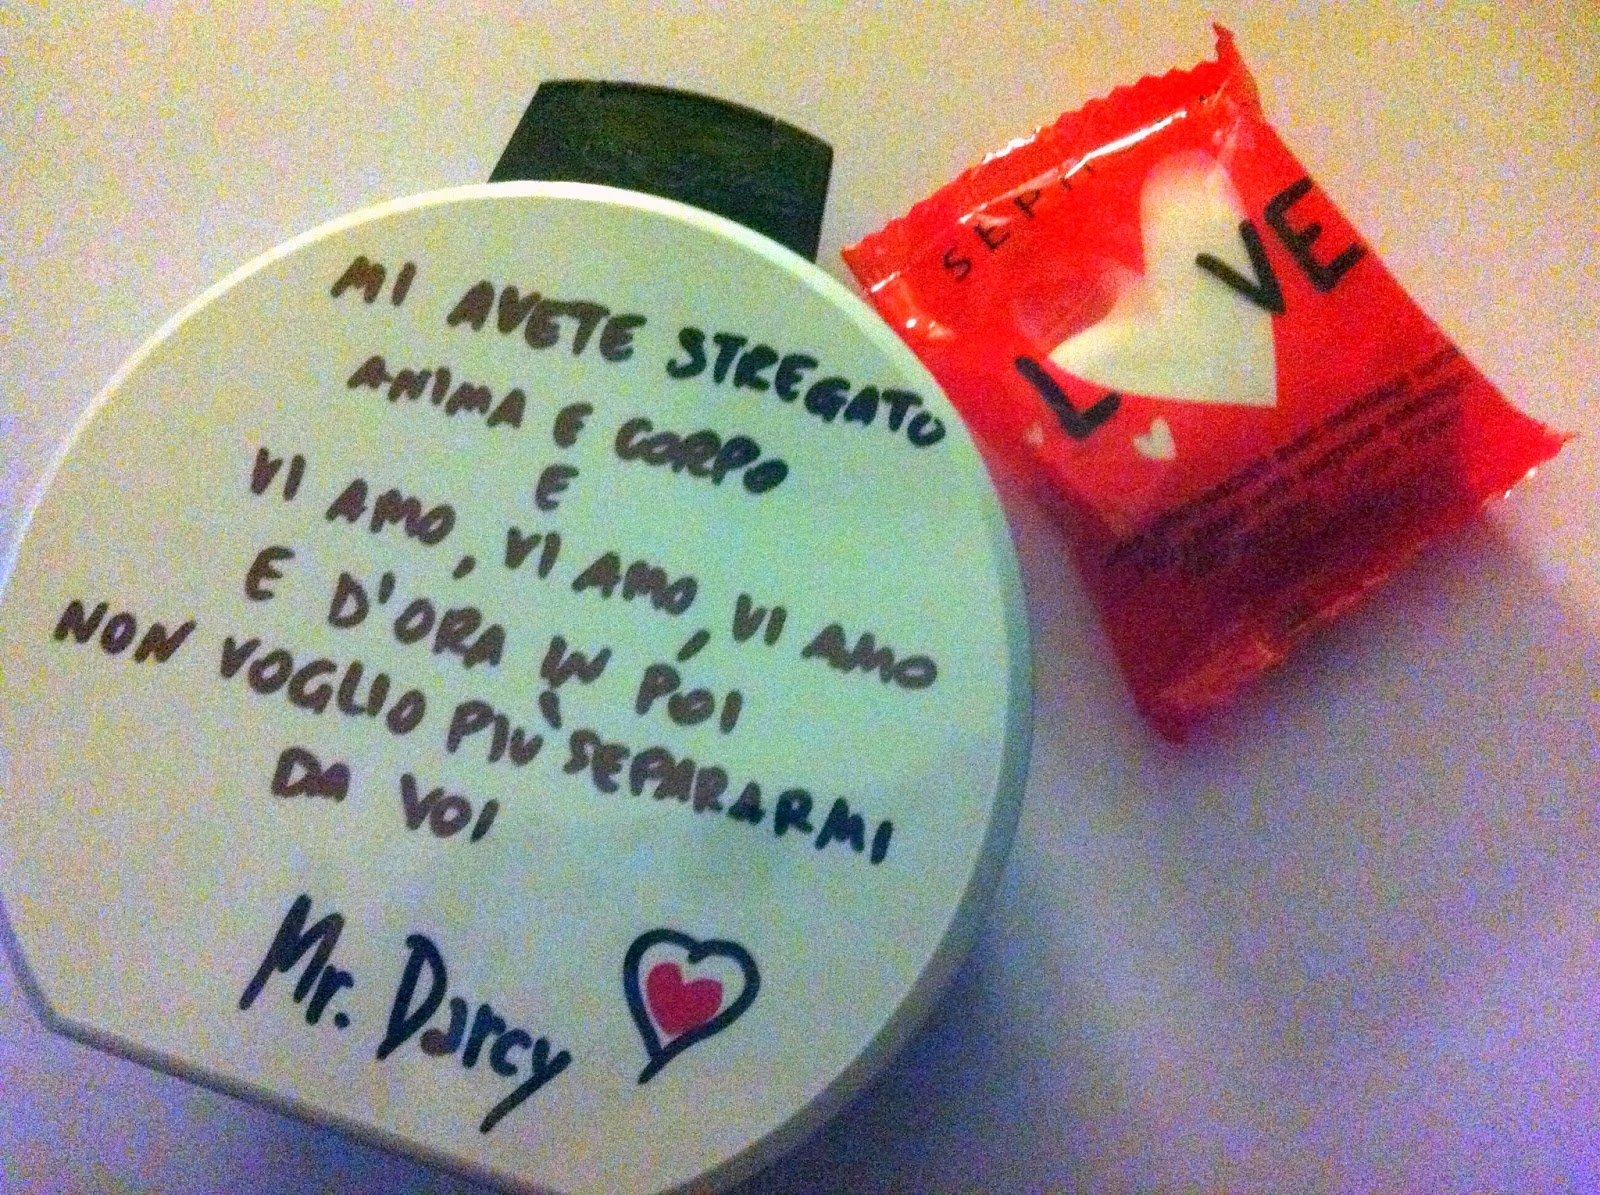 Sms d'amore dolci per lui